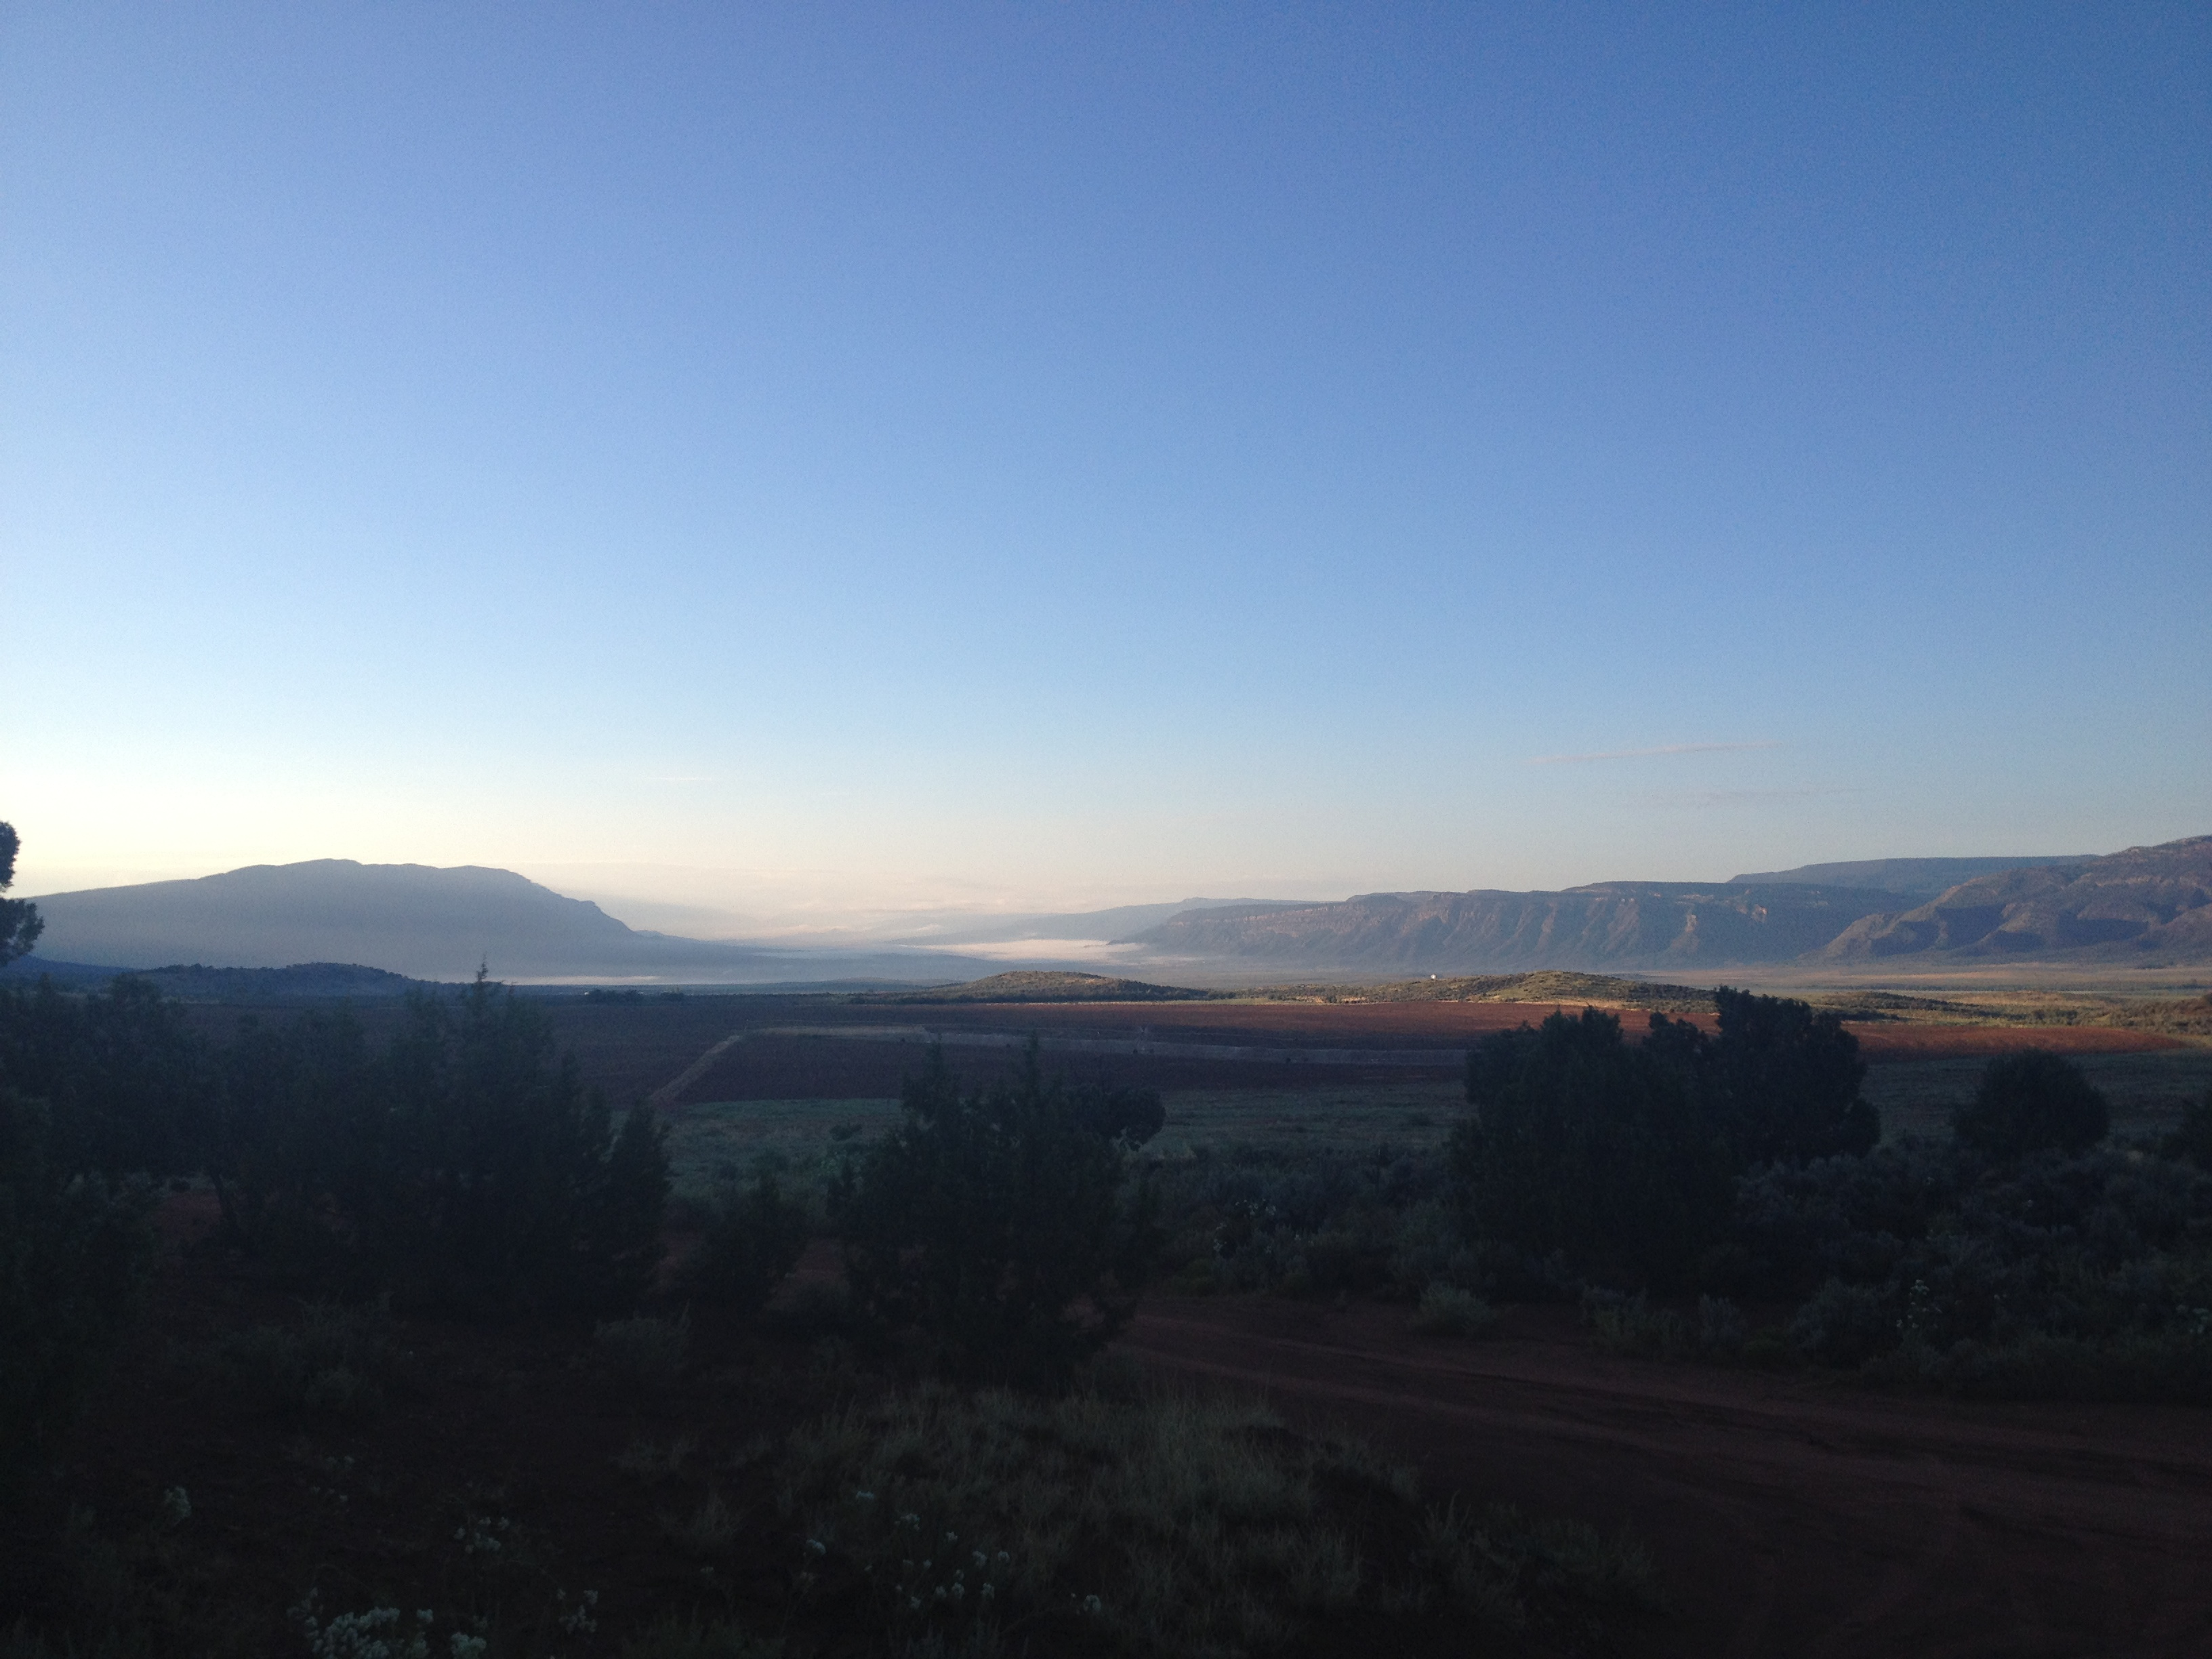 Misty morning in Paradox Valley